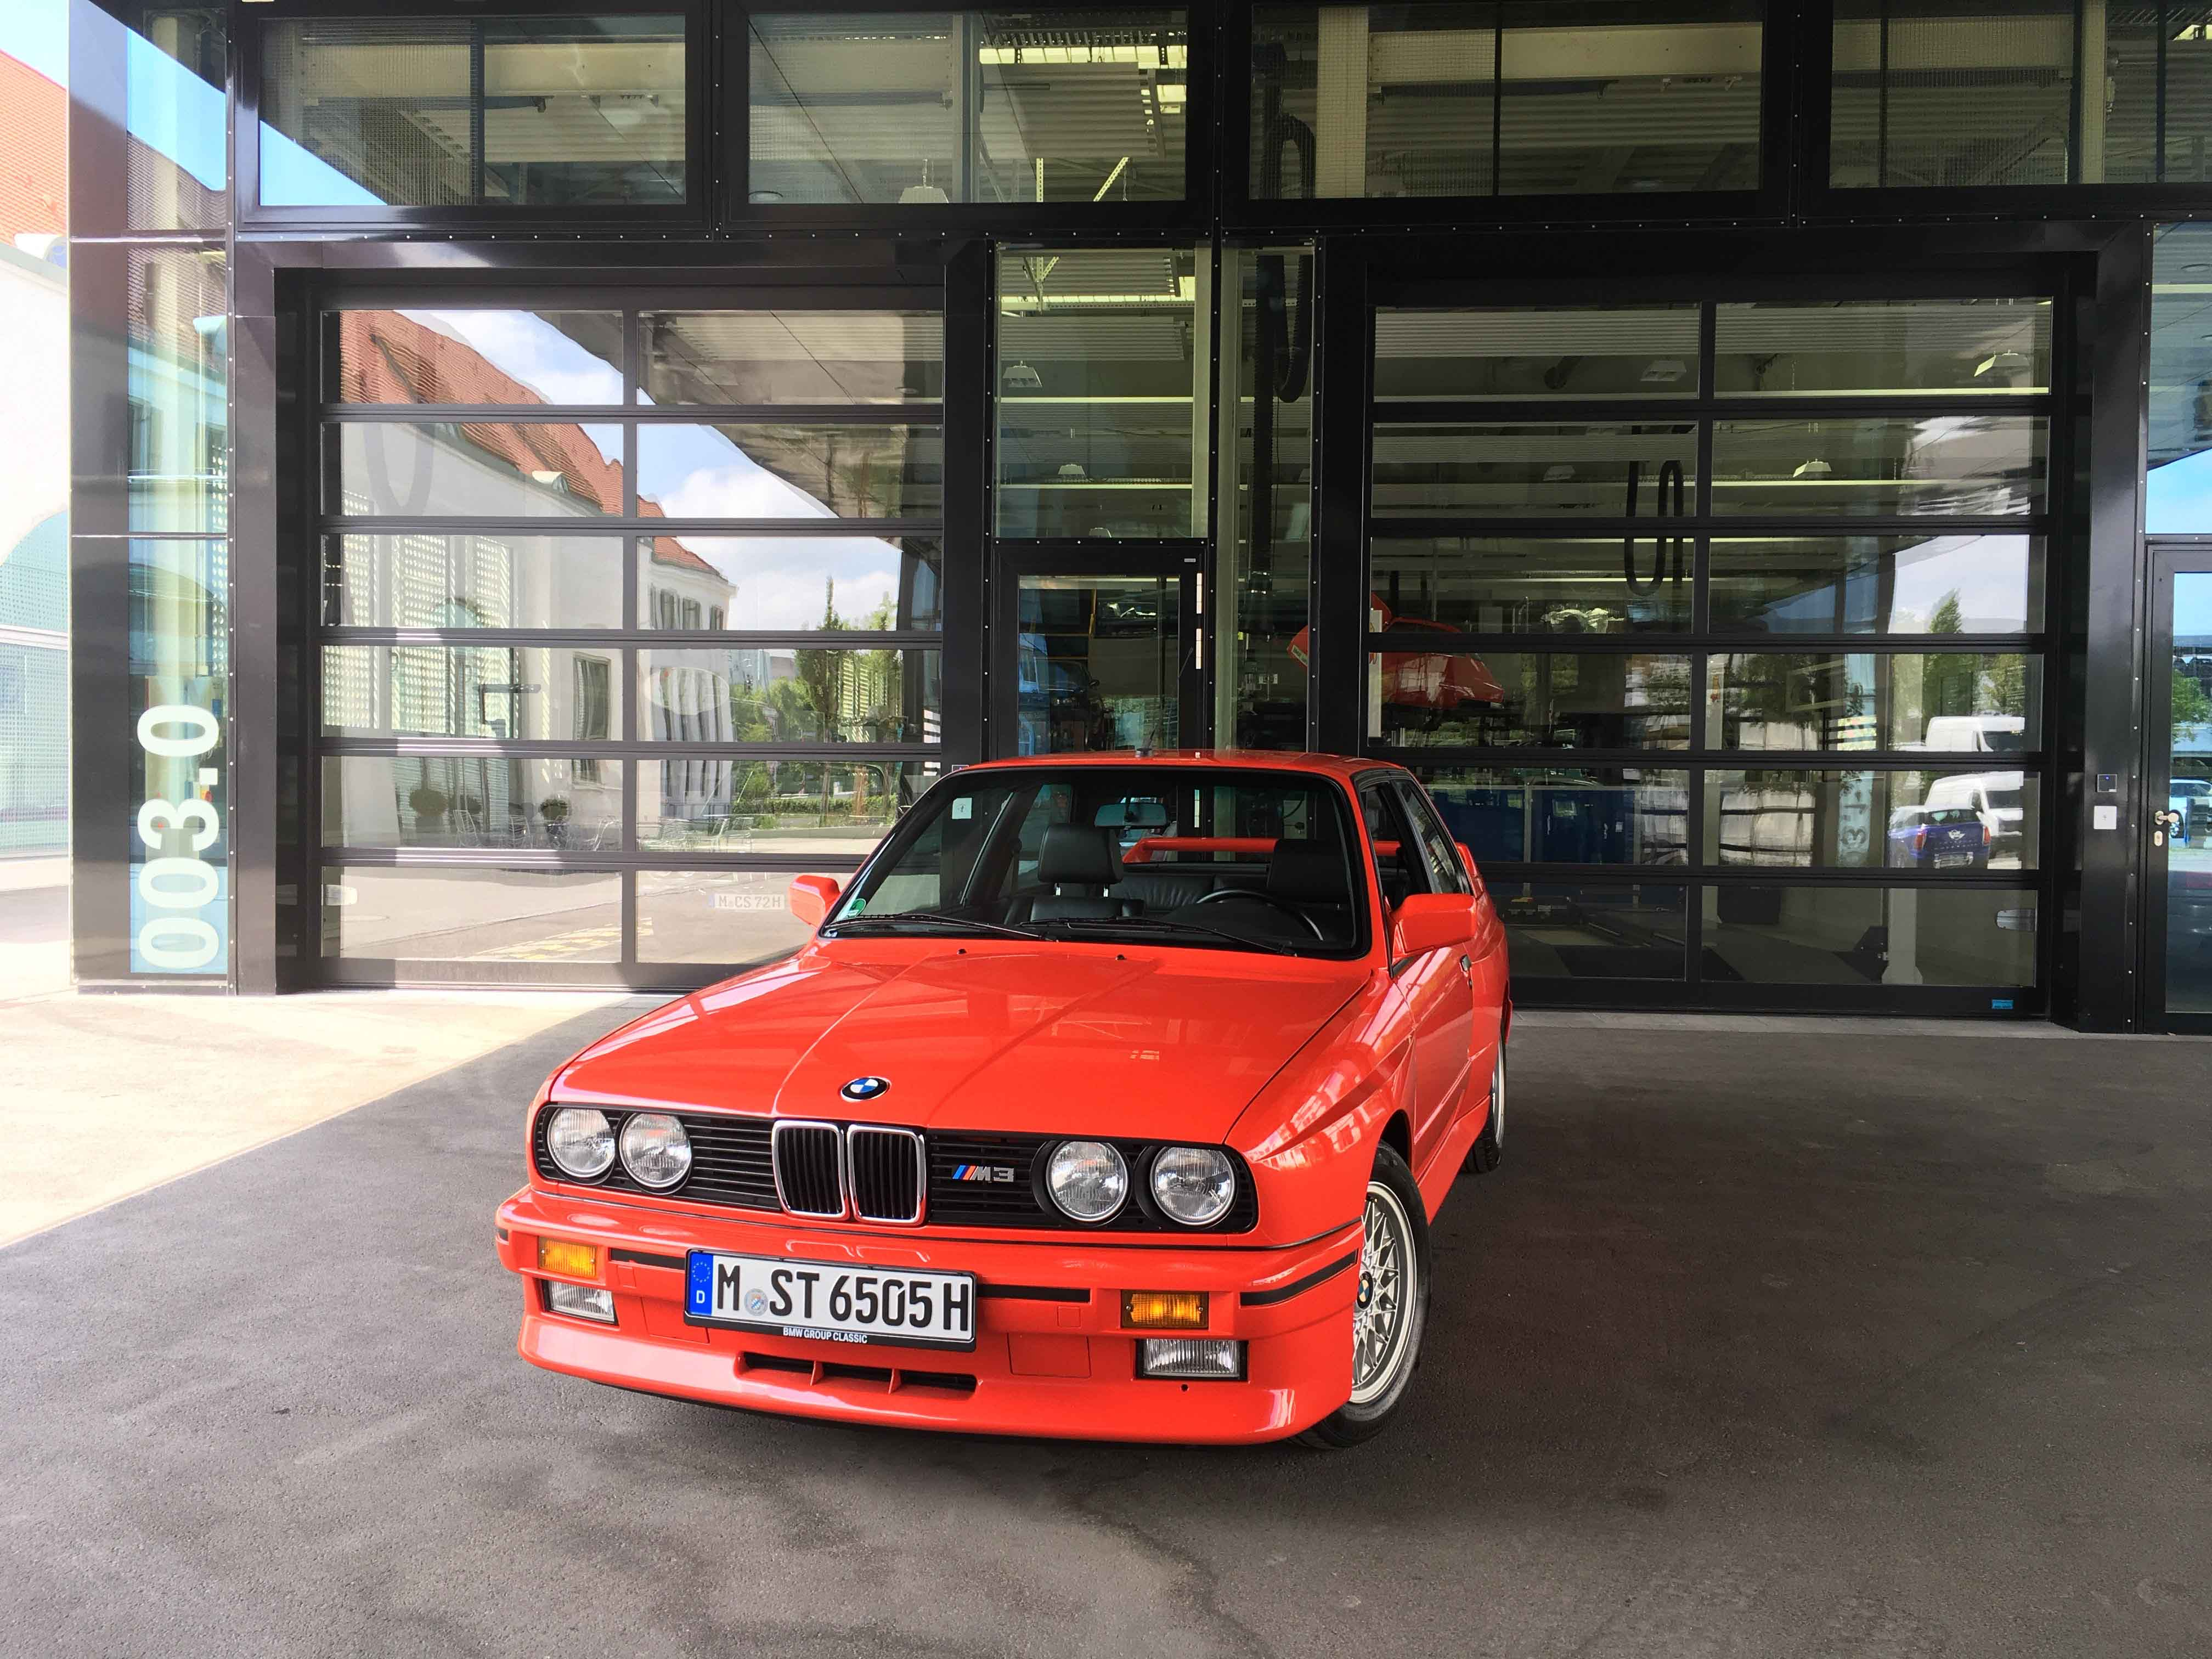 1987 BMW M3 front view